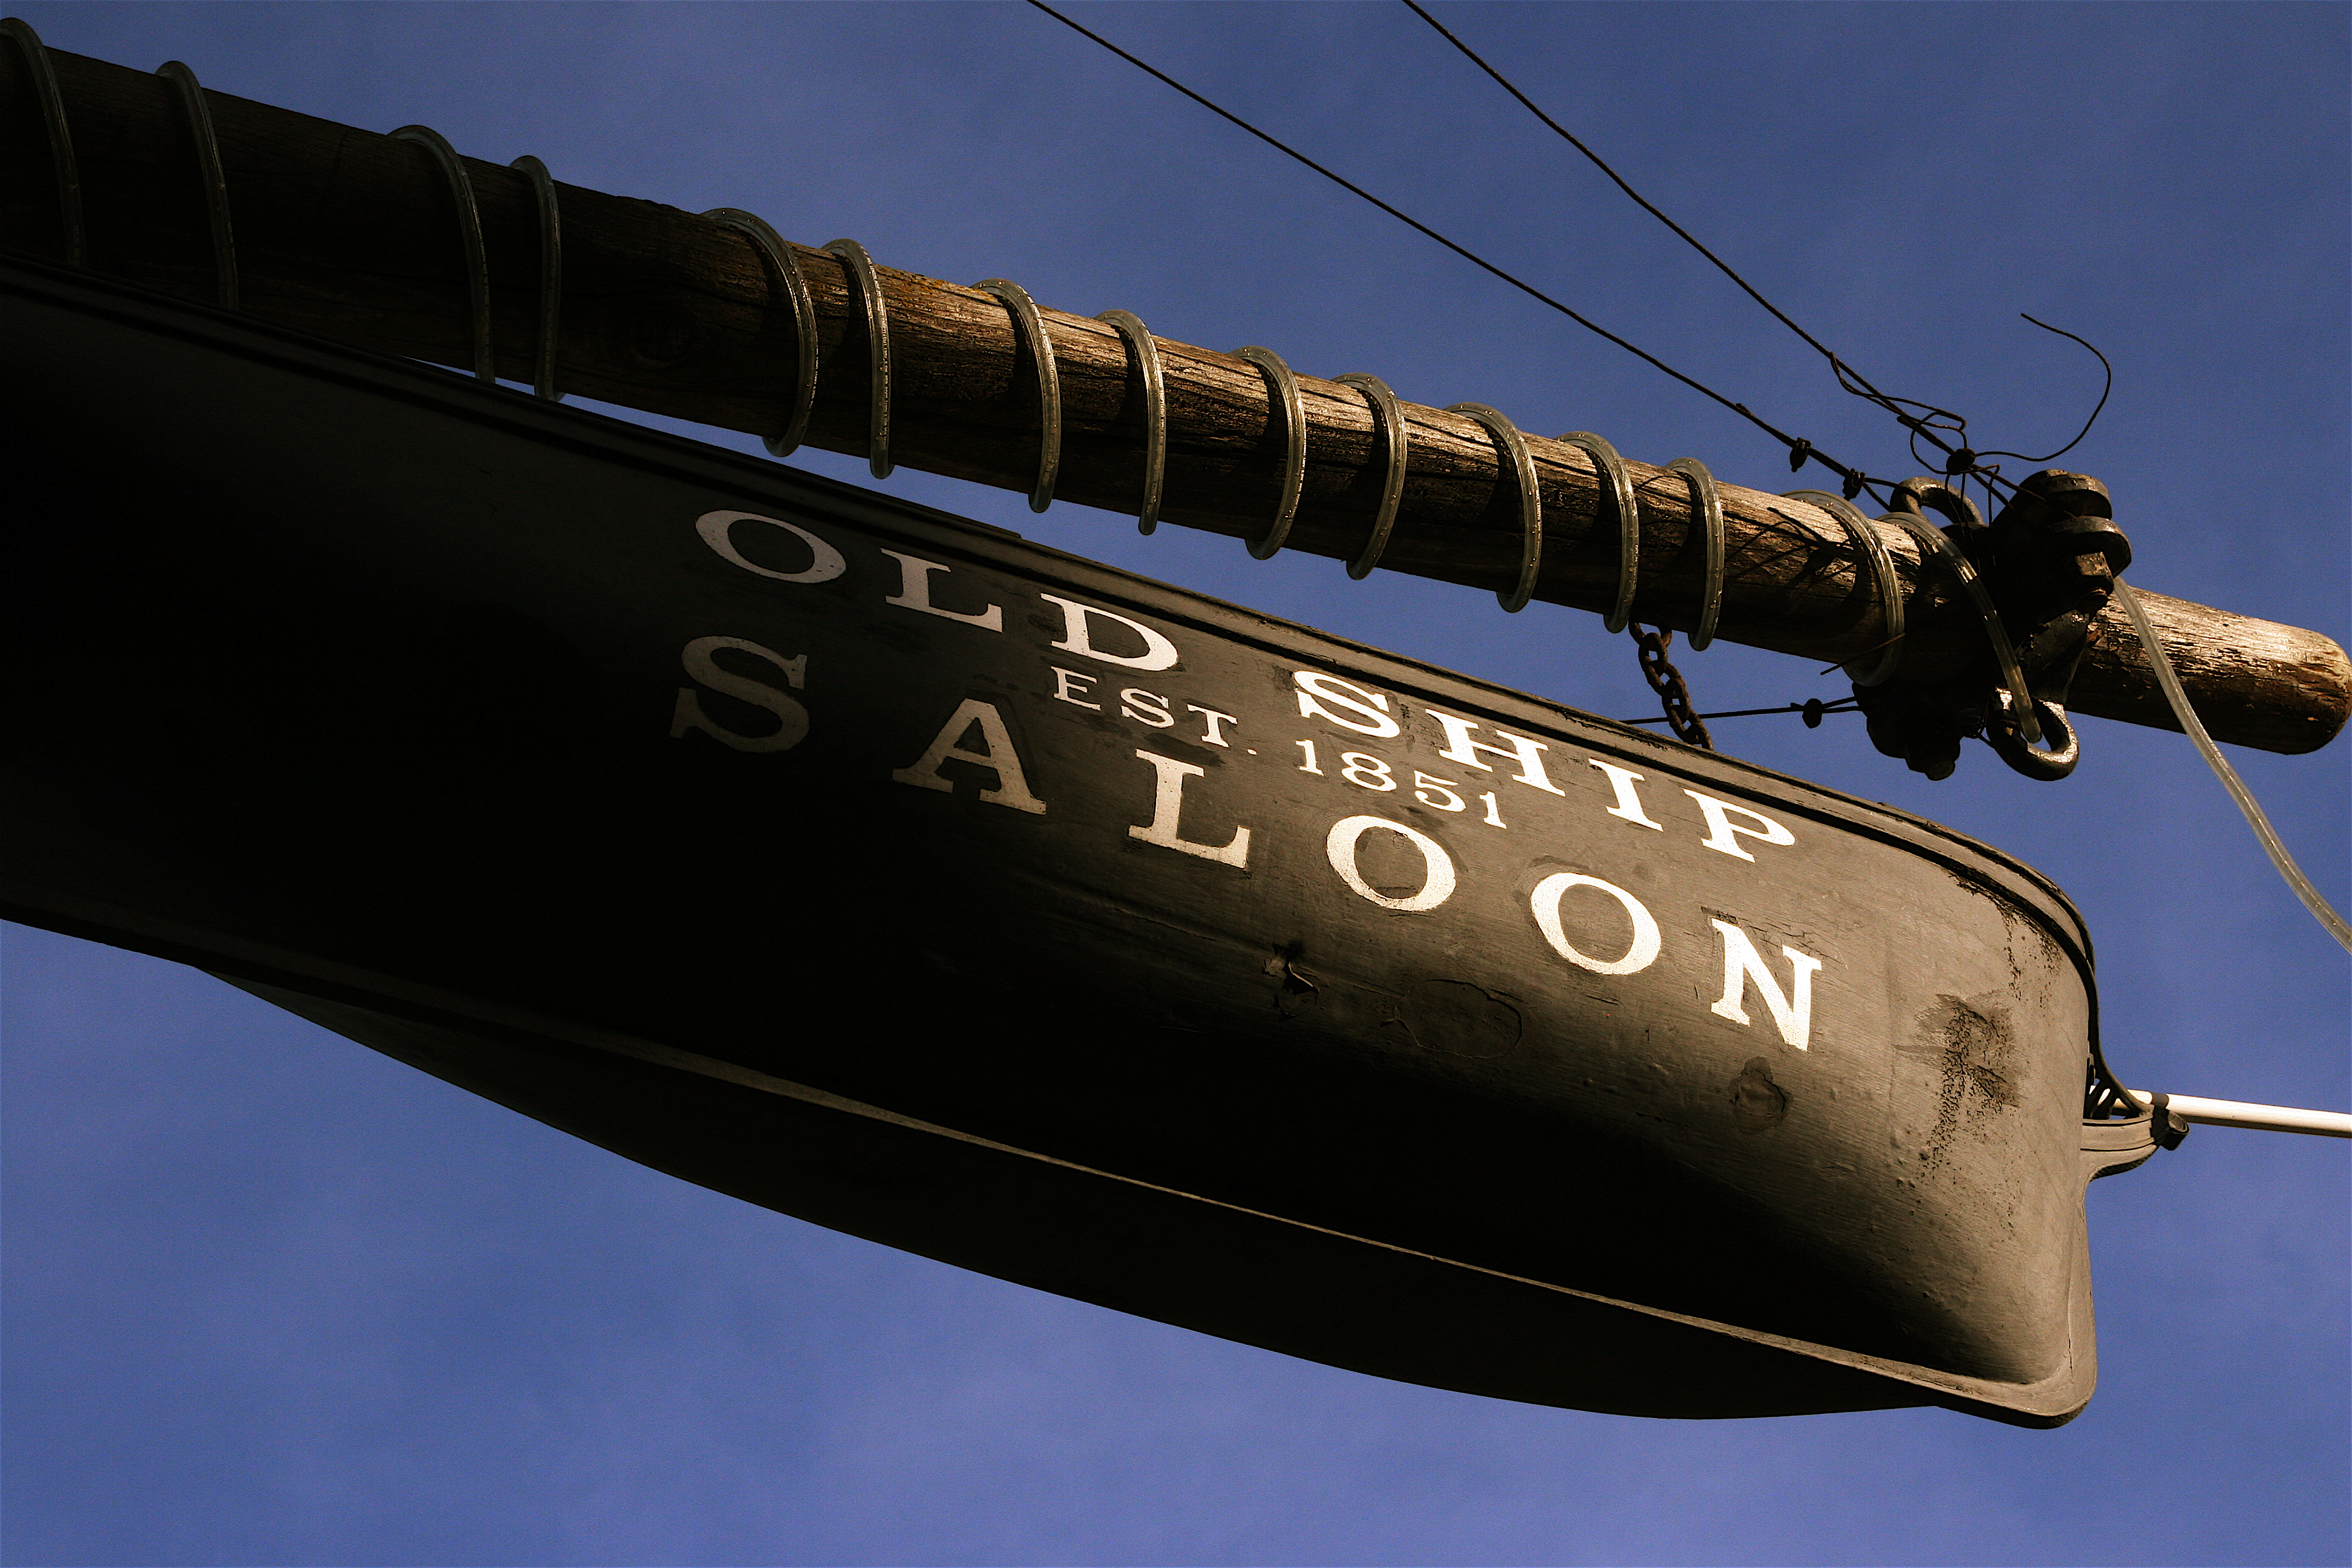 The Old Ship Saloon (built in 1851) was originally opened in the hull of a sailing ship, the Arkansas. The hull of this ship is now buried below paved city streets, but the saloon still operates in at street level in a building at the same spot